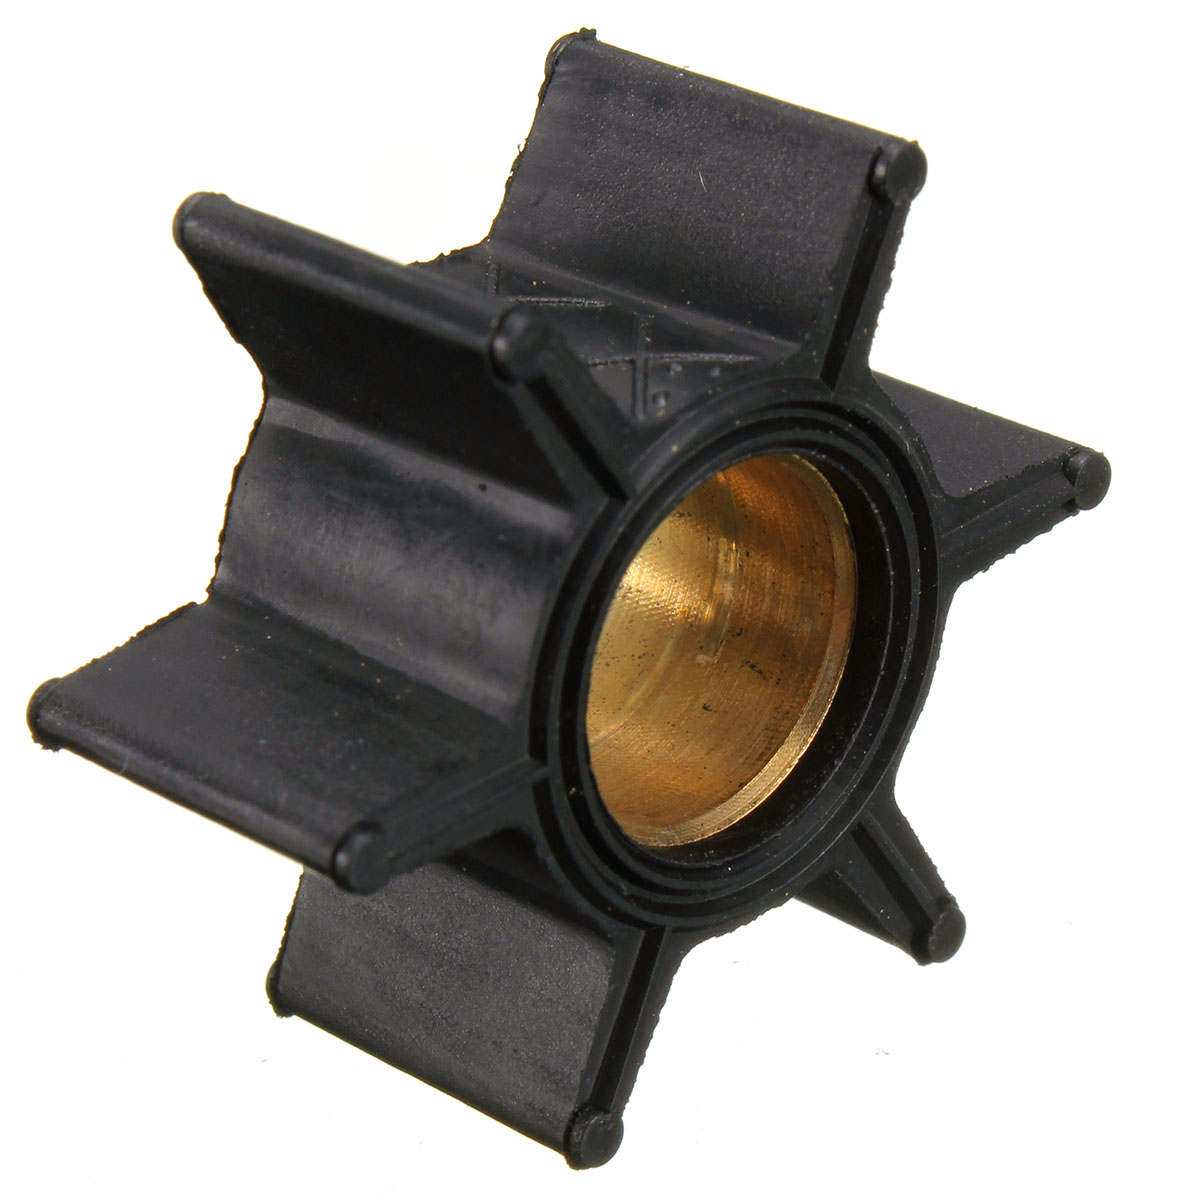 Outboard Motor Quicksilver Water Pump Impeller HP 47-89981 47-65957 18-3039 For Mercury/Mariner Outboard 4, 4.5, 6, 7.5, 9.8